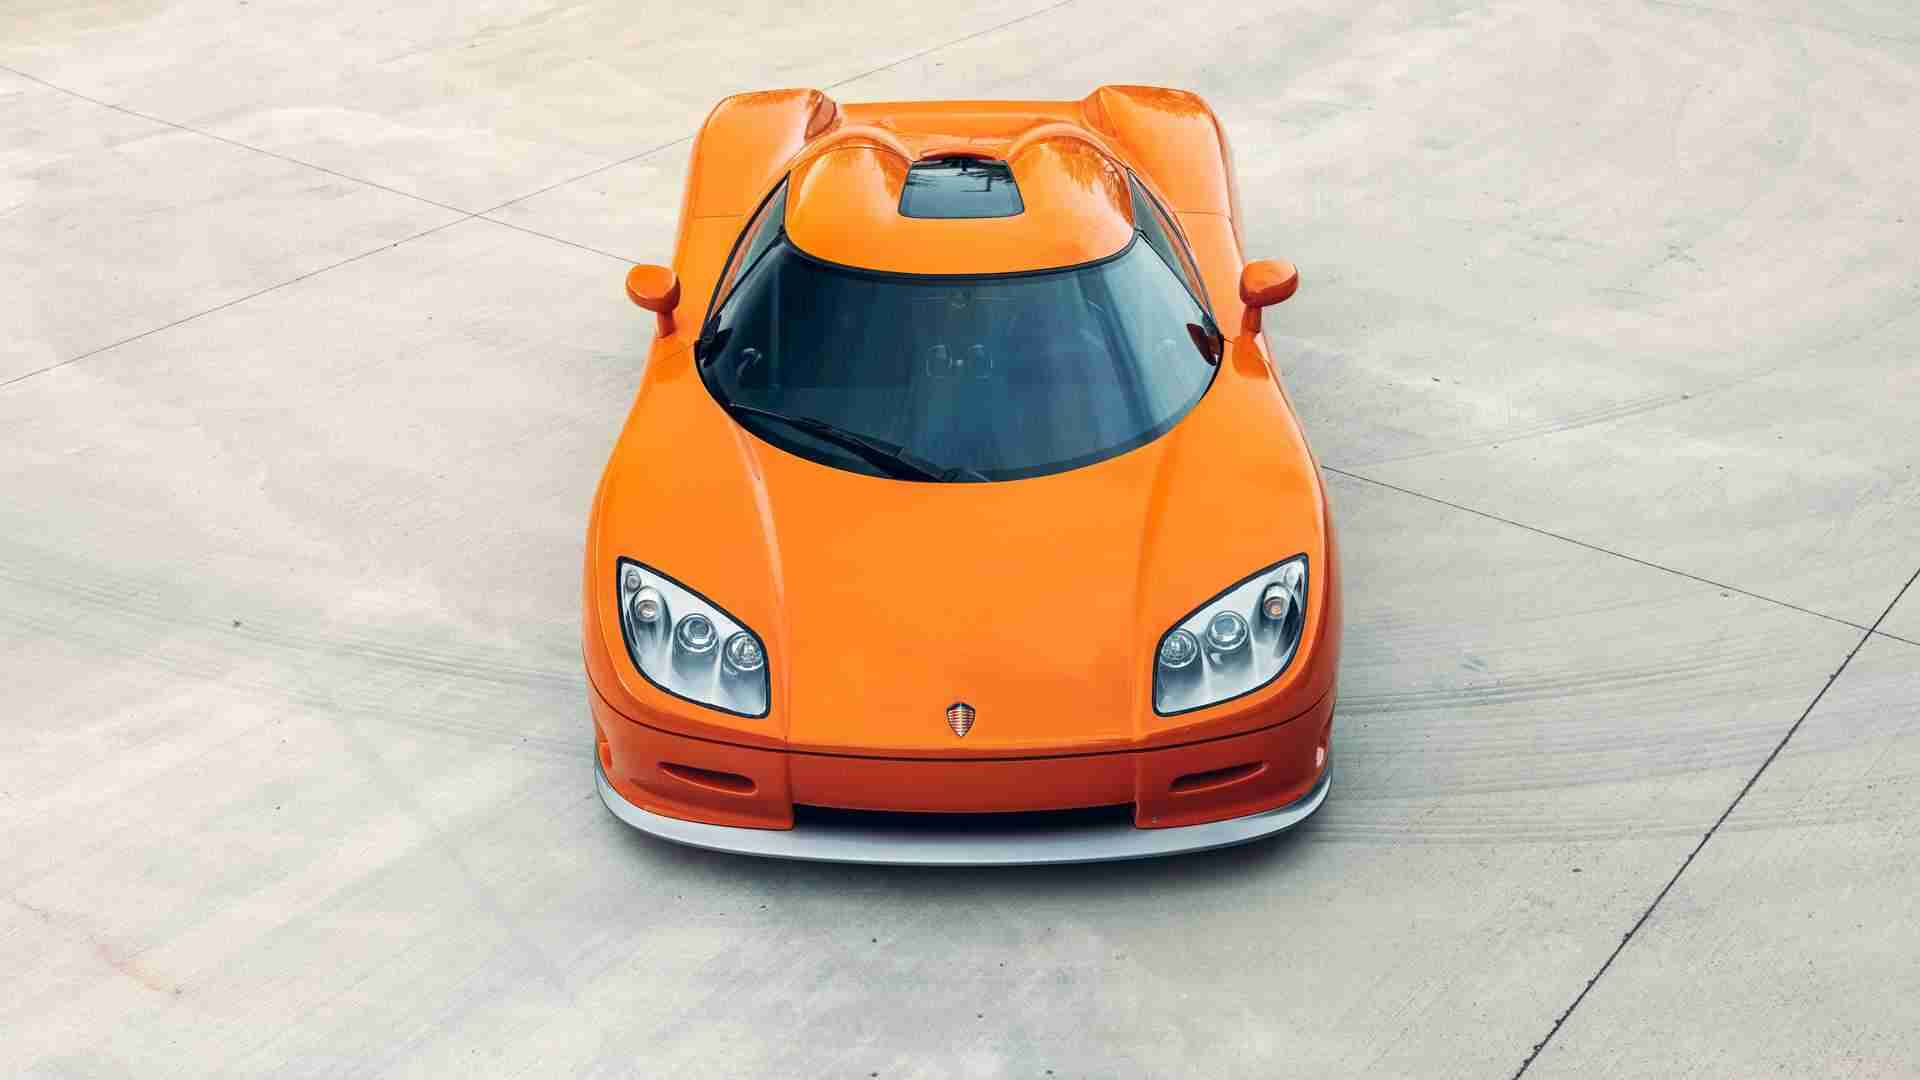 A 17-year-old Koenigsegg CCR supercar that debuted at the Geneva International Motor Show back in 2004 will go on sale next month with 2,300 kilometers (1,429 miles) under the belt.